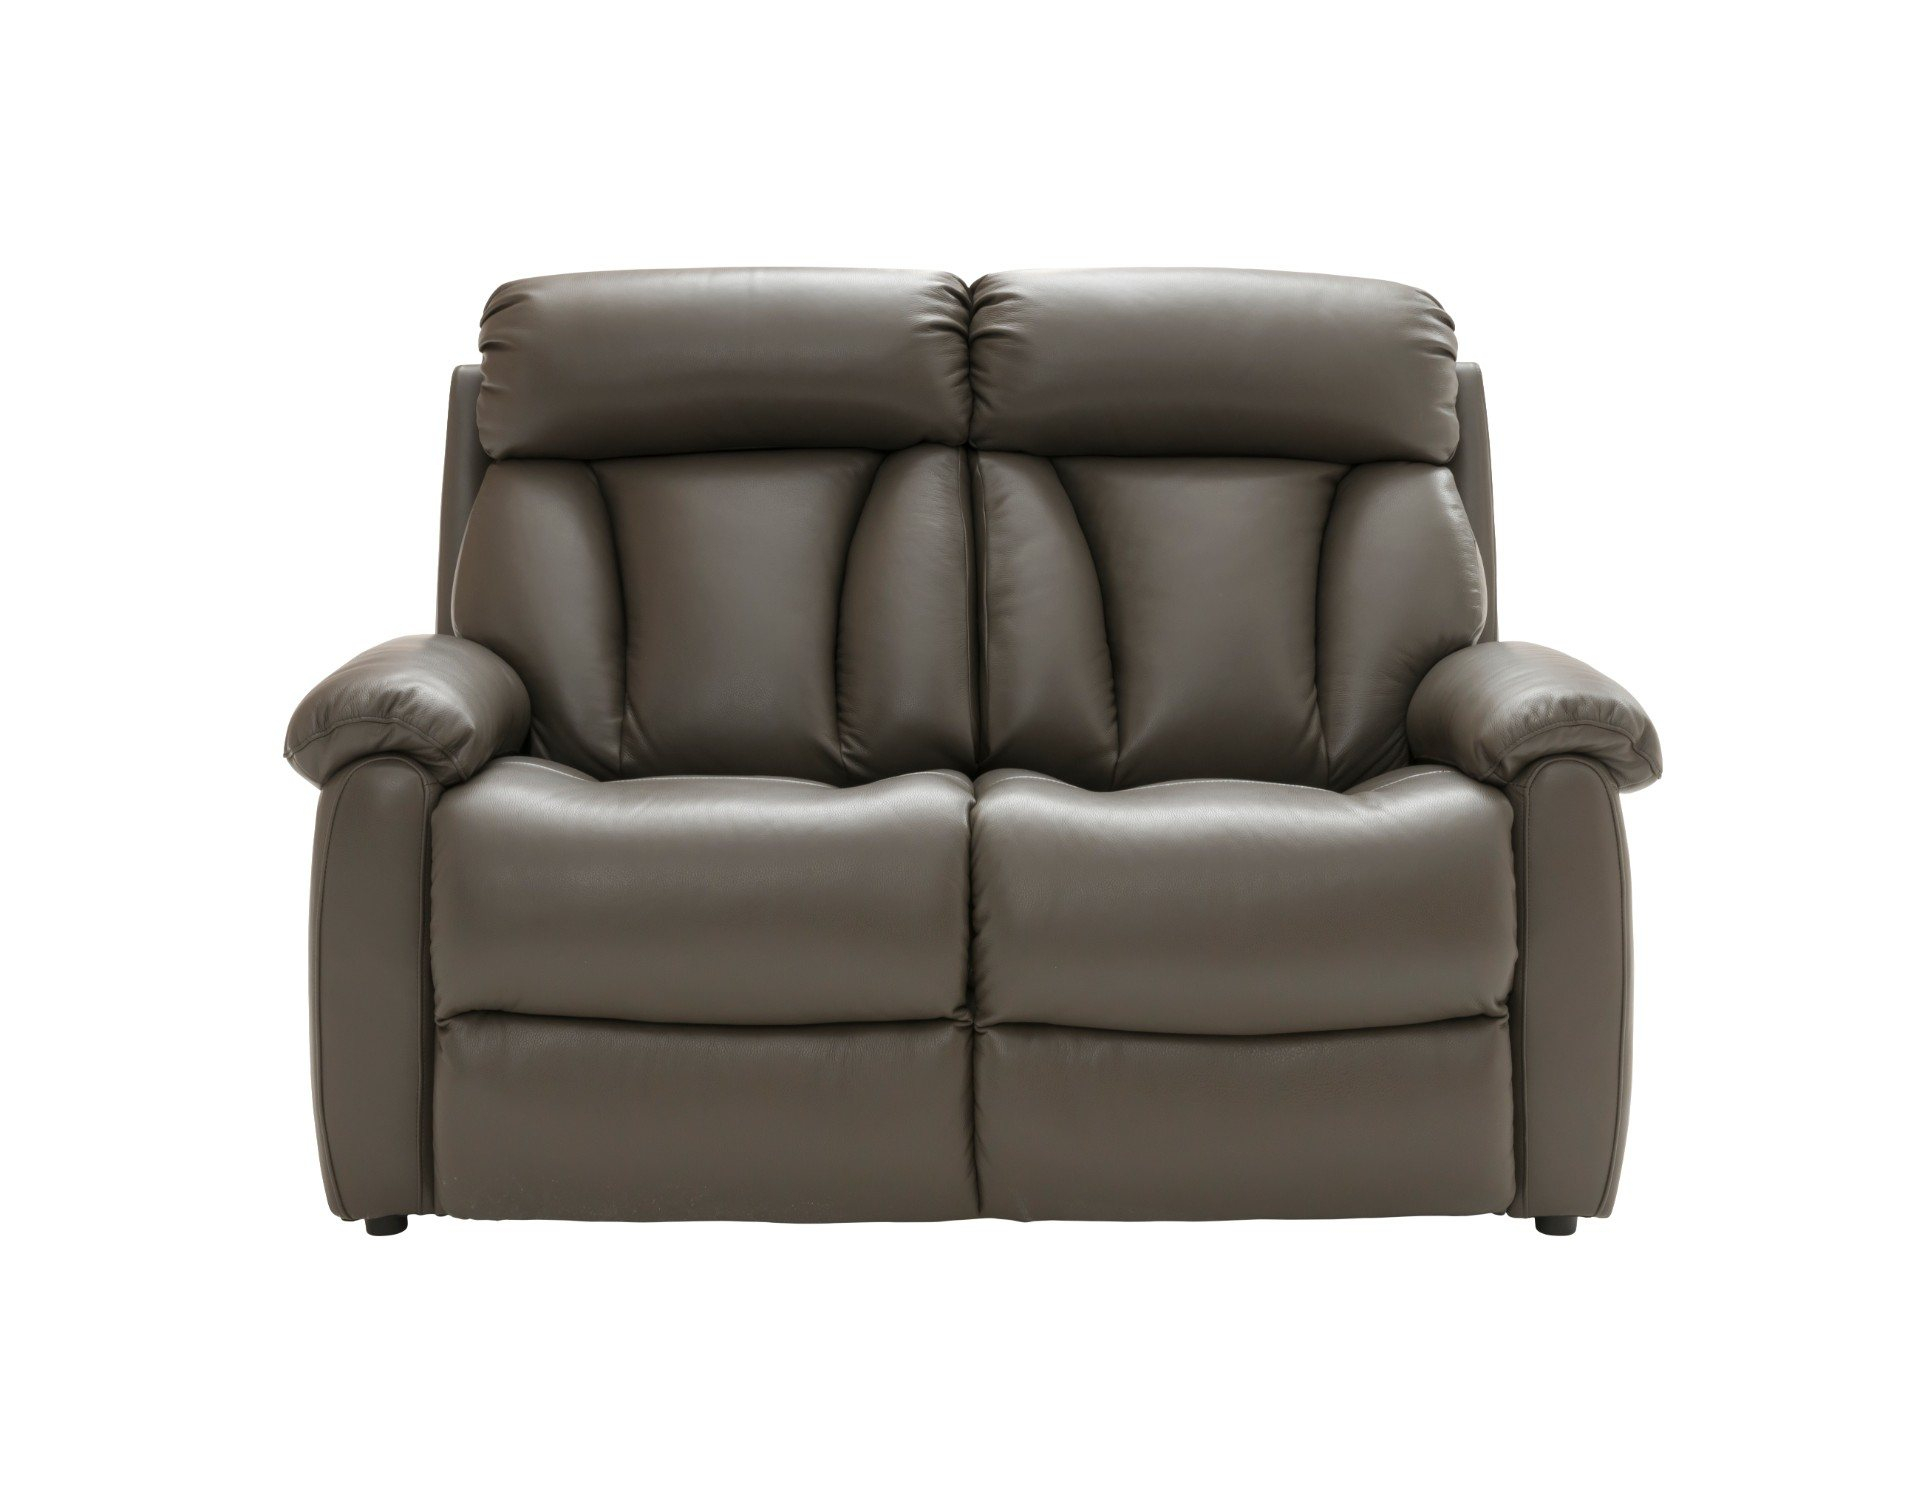 La Z Boy Georgina 2 Seater Leather Sofa Intended For Georgina Armchairs (Set Of 2) (View 4 of 15)